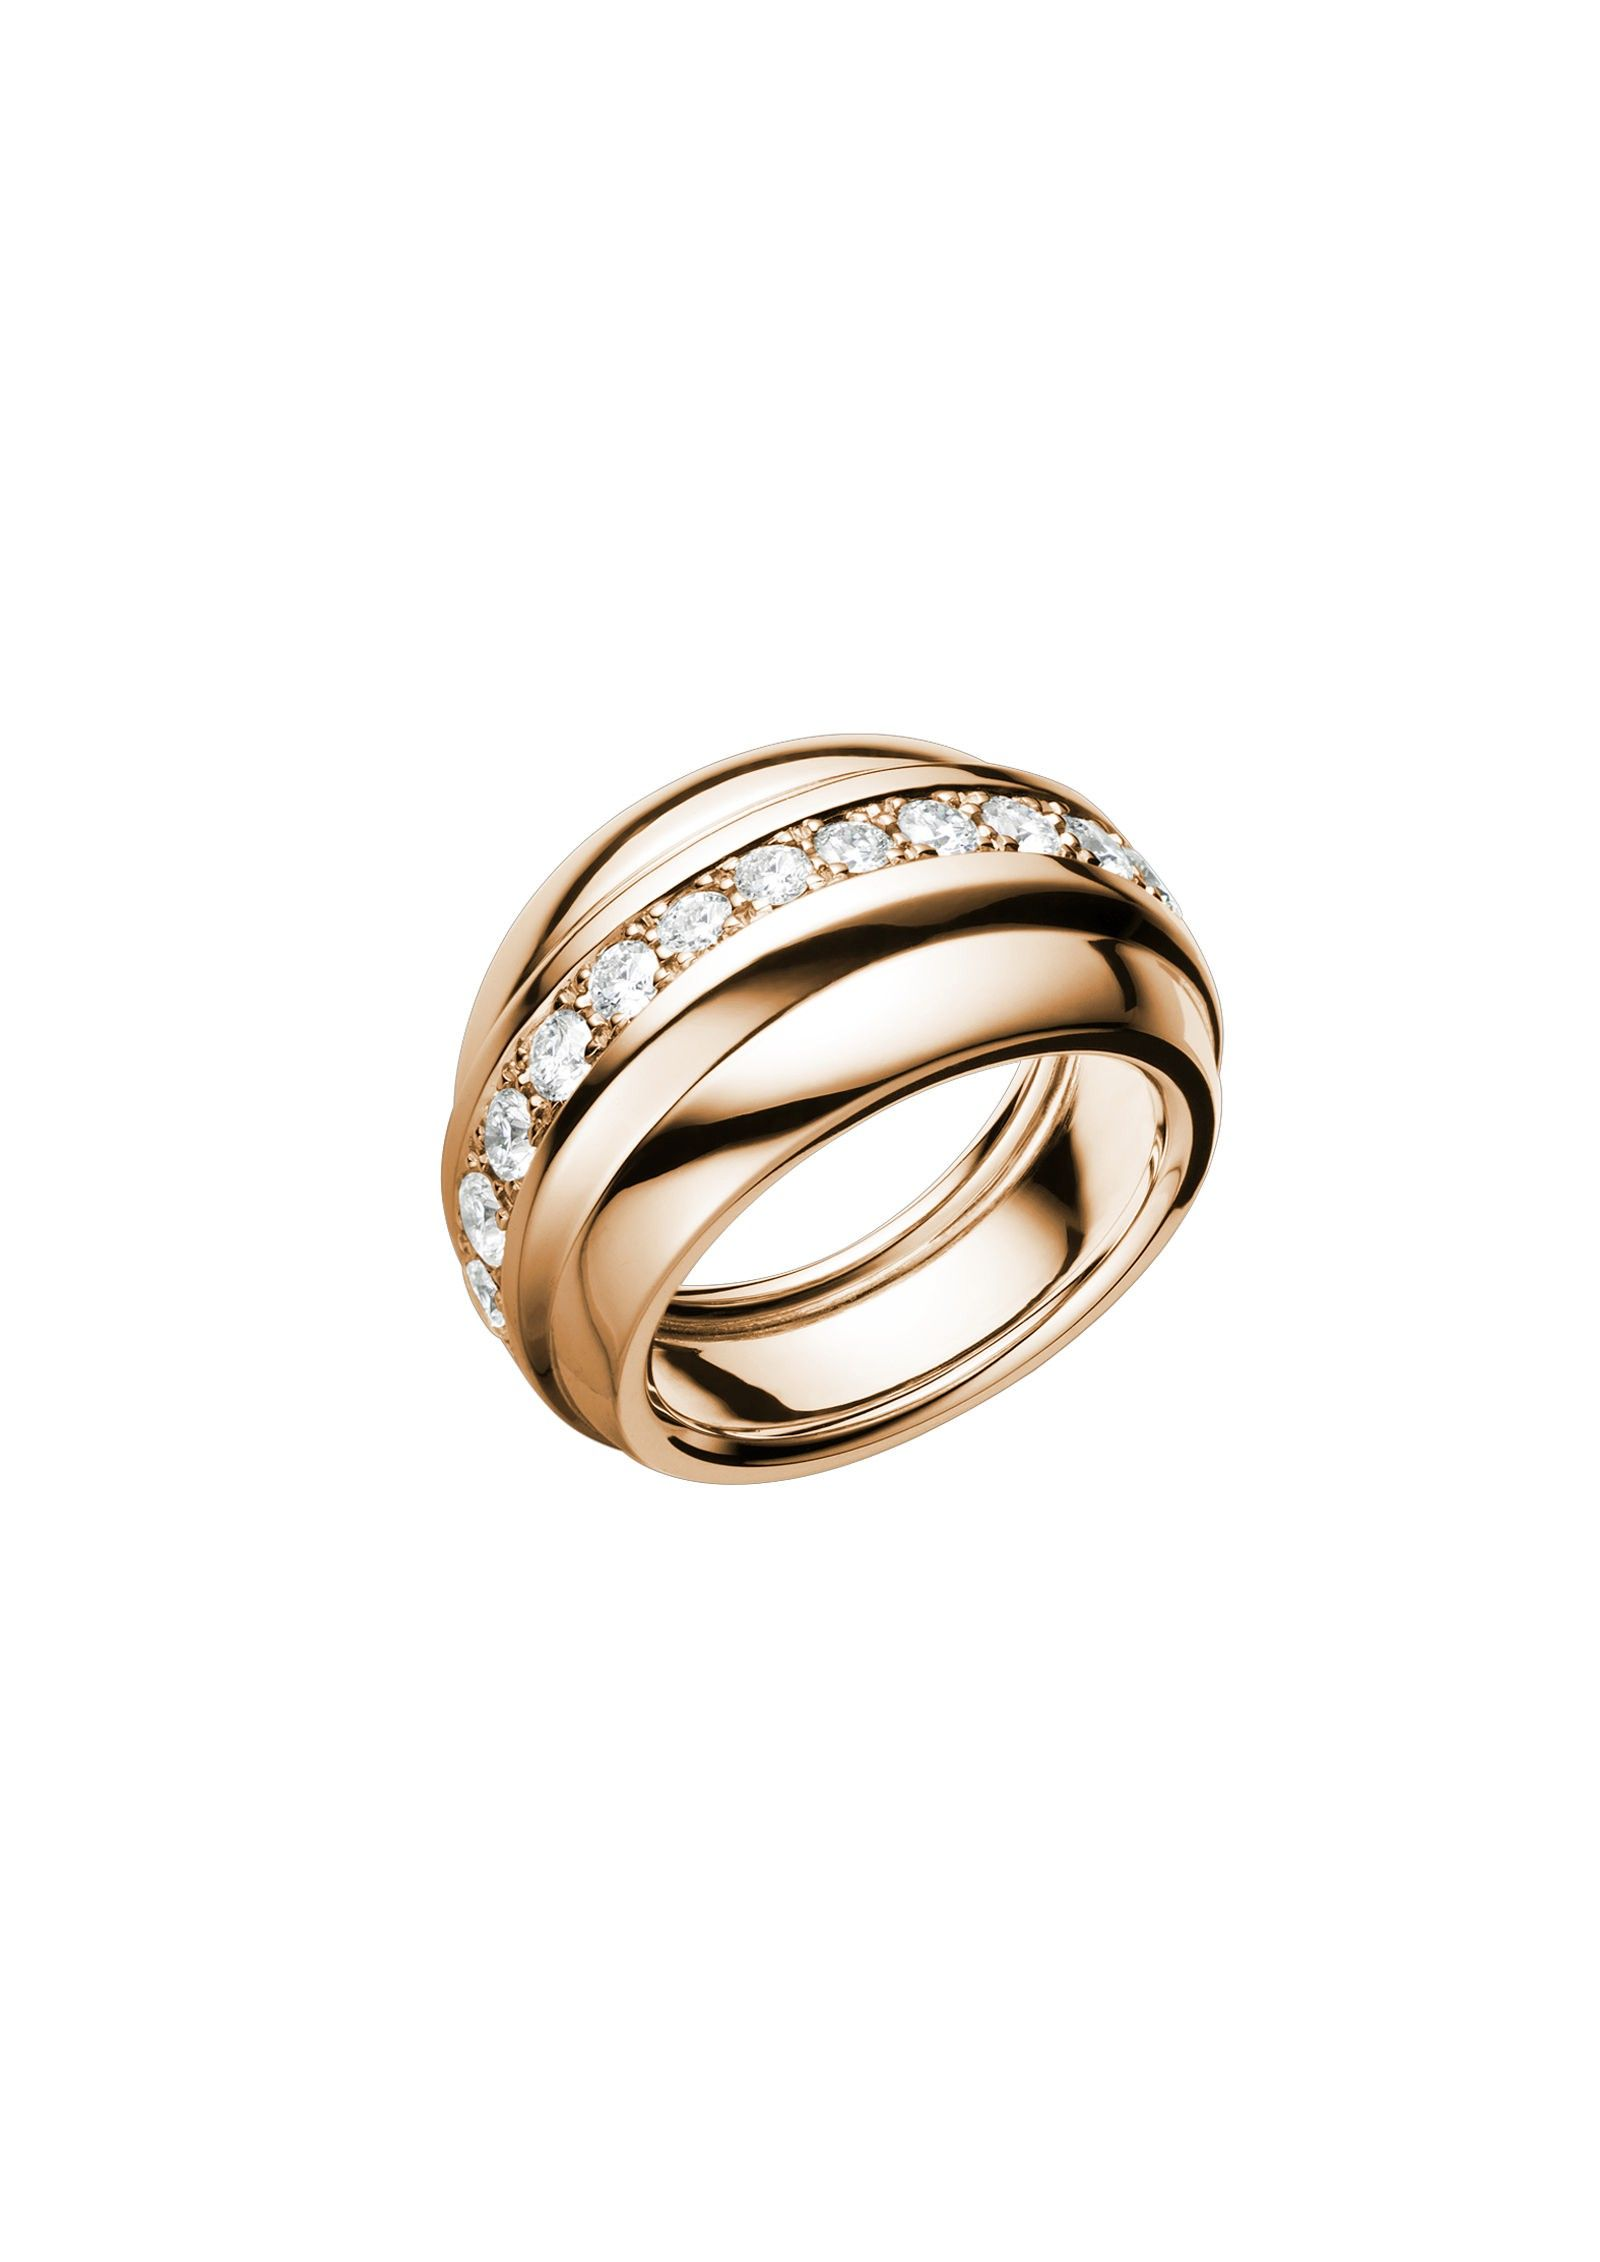 With its simple lines and refined curves this La Strada ring in